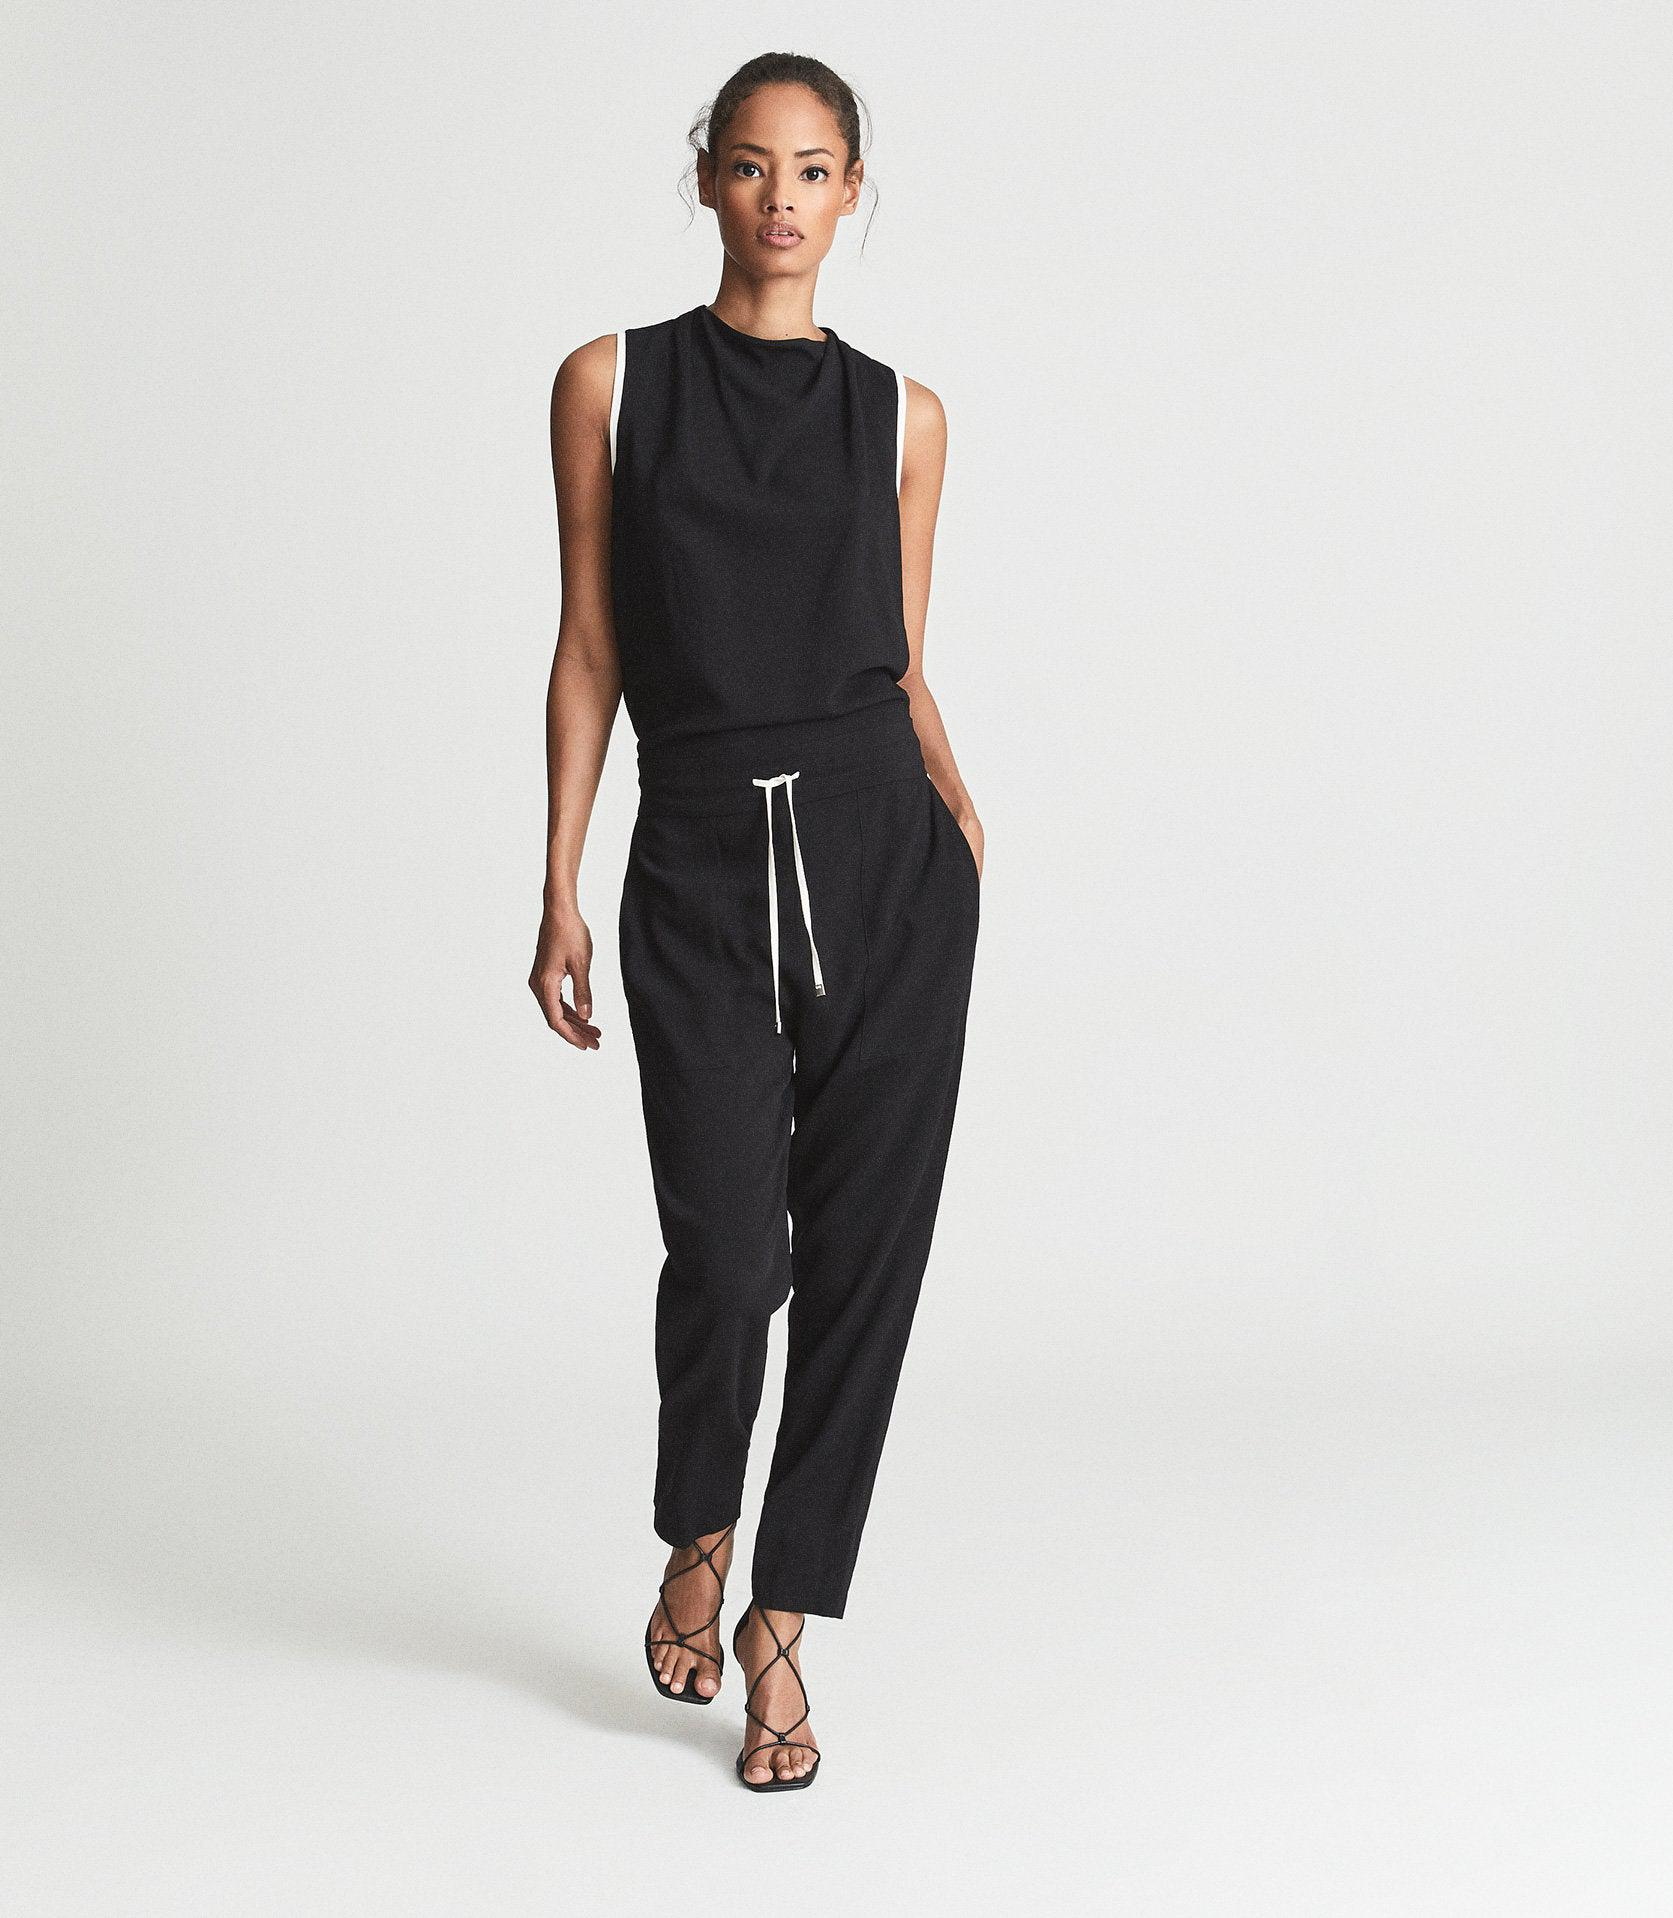 CLAUDIA - SLEEVELESS JUMPSUIT WITH CONTRAST TIPPING